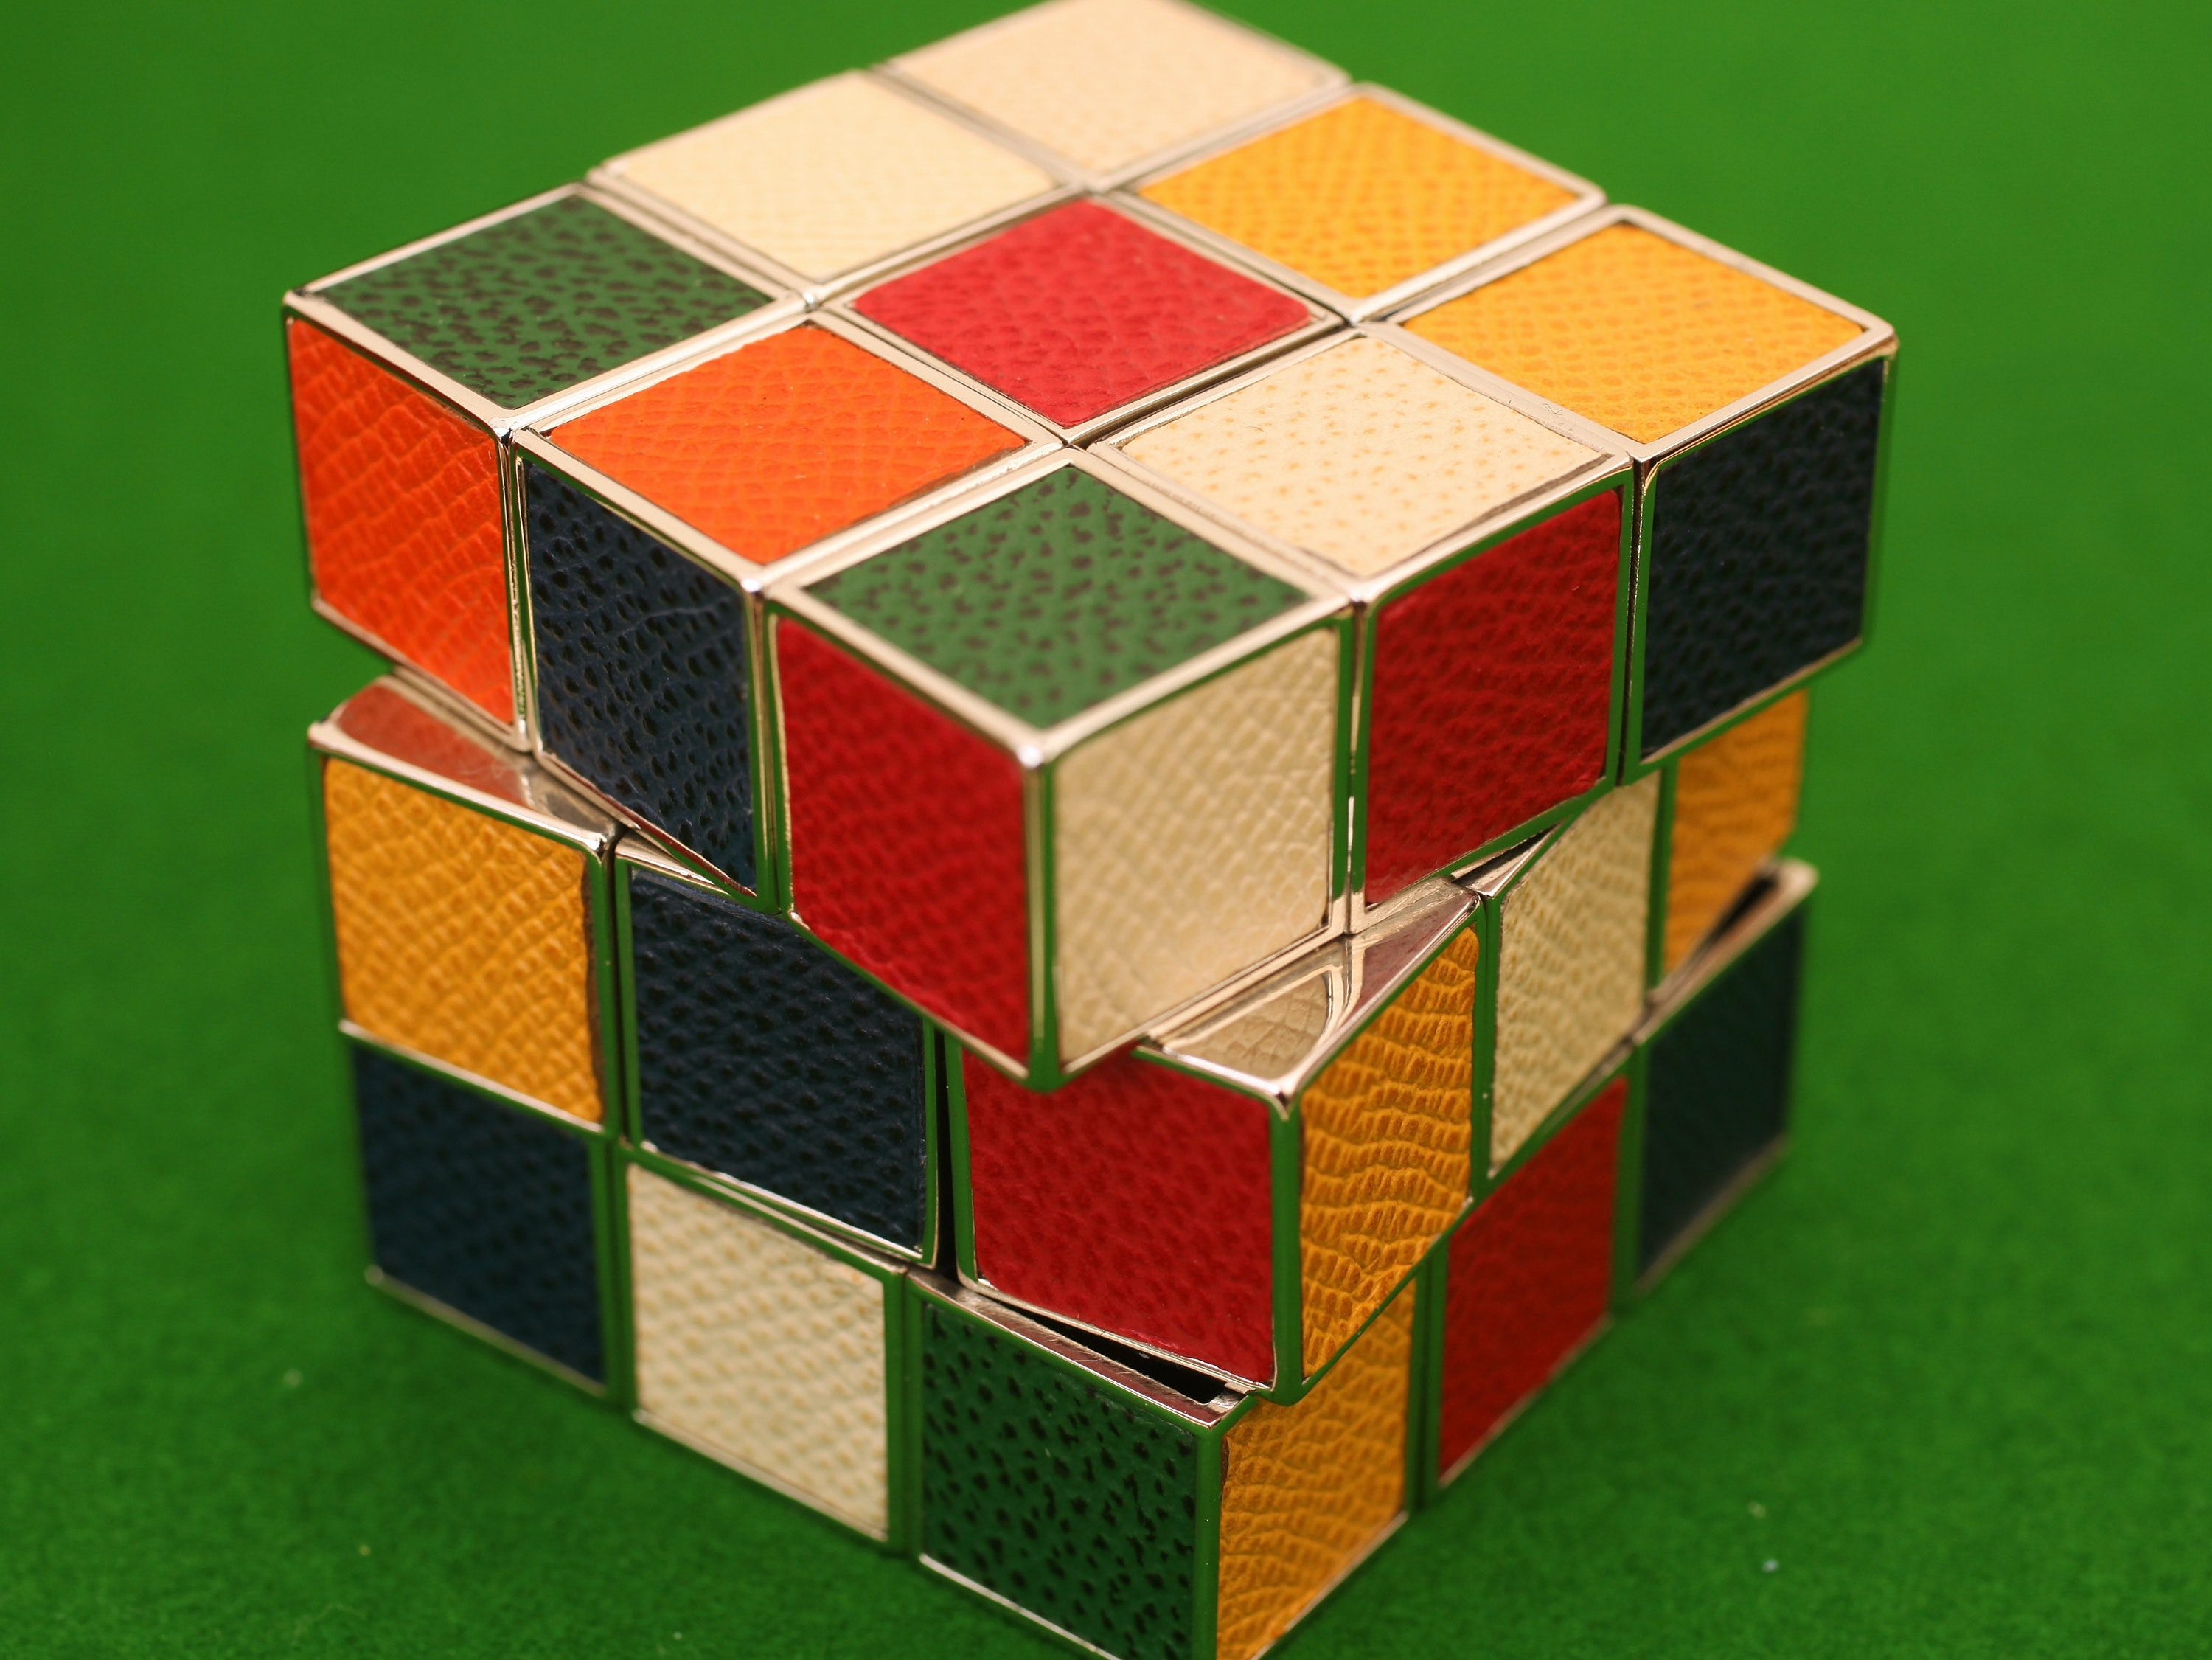 Adam Cheyer, the man behind Siri and Viv, started programming because of the Rubik's Cube.